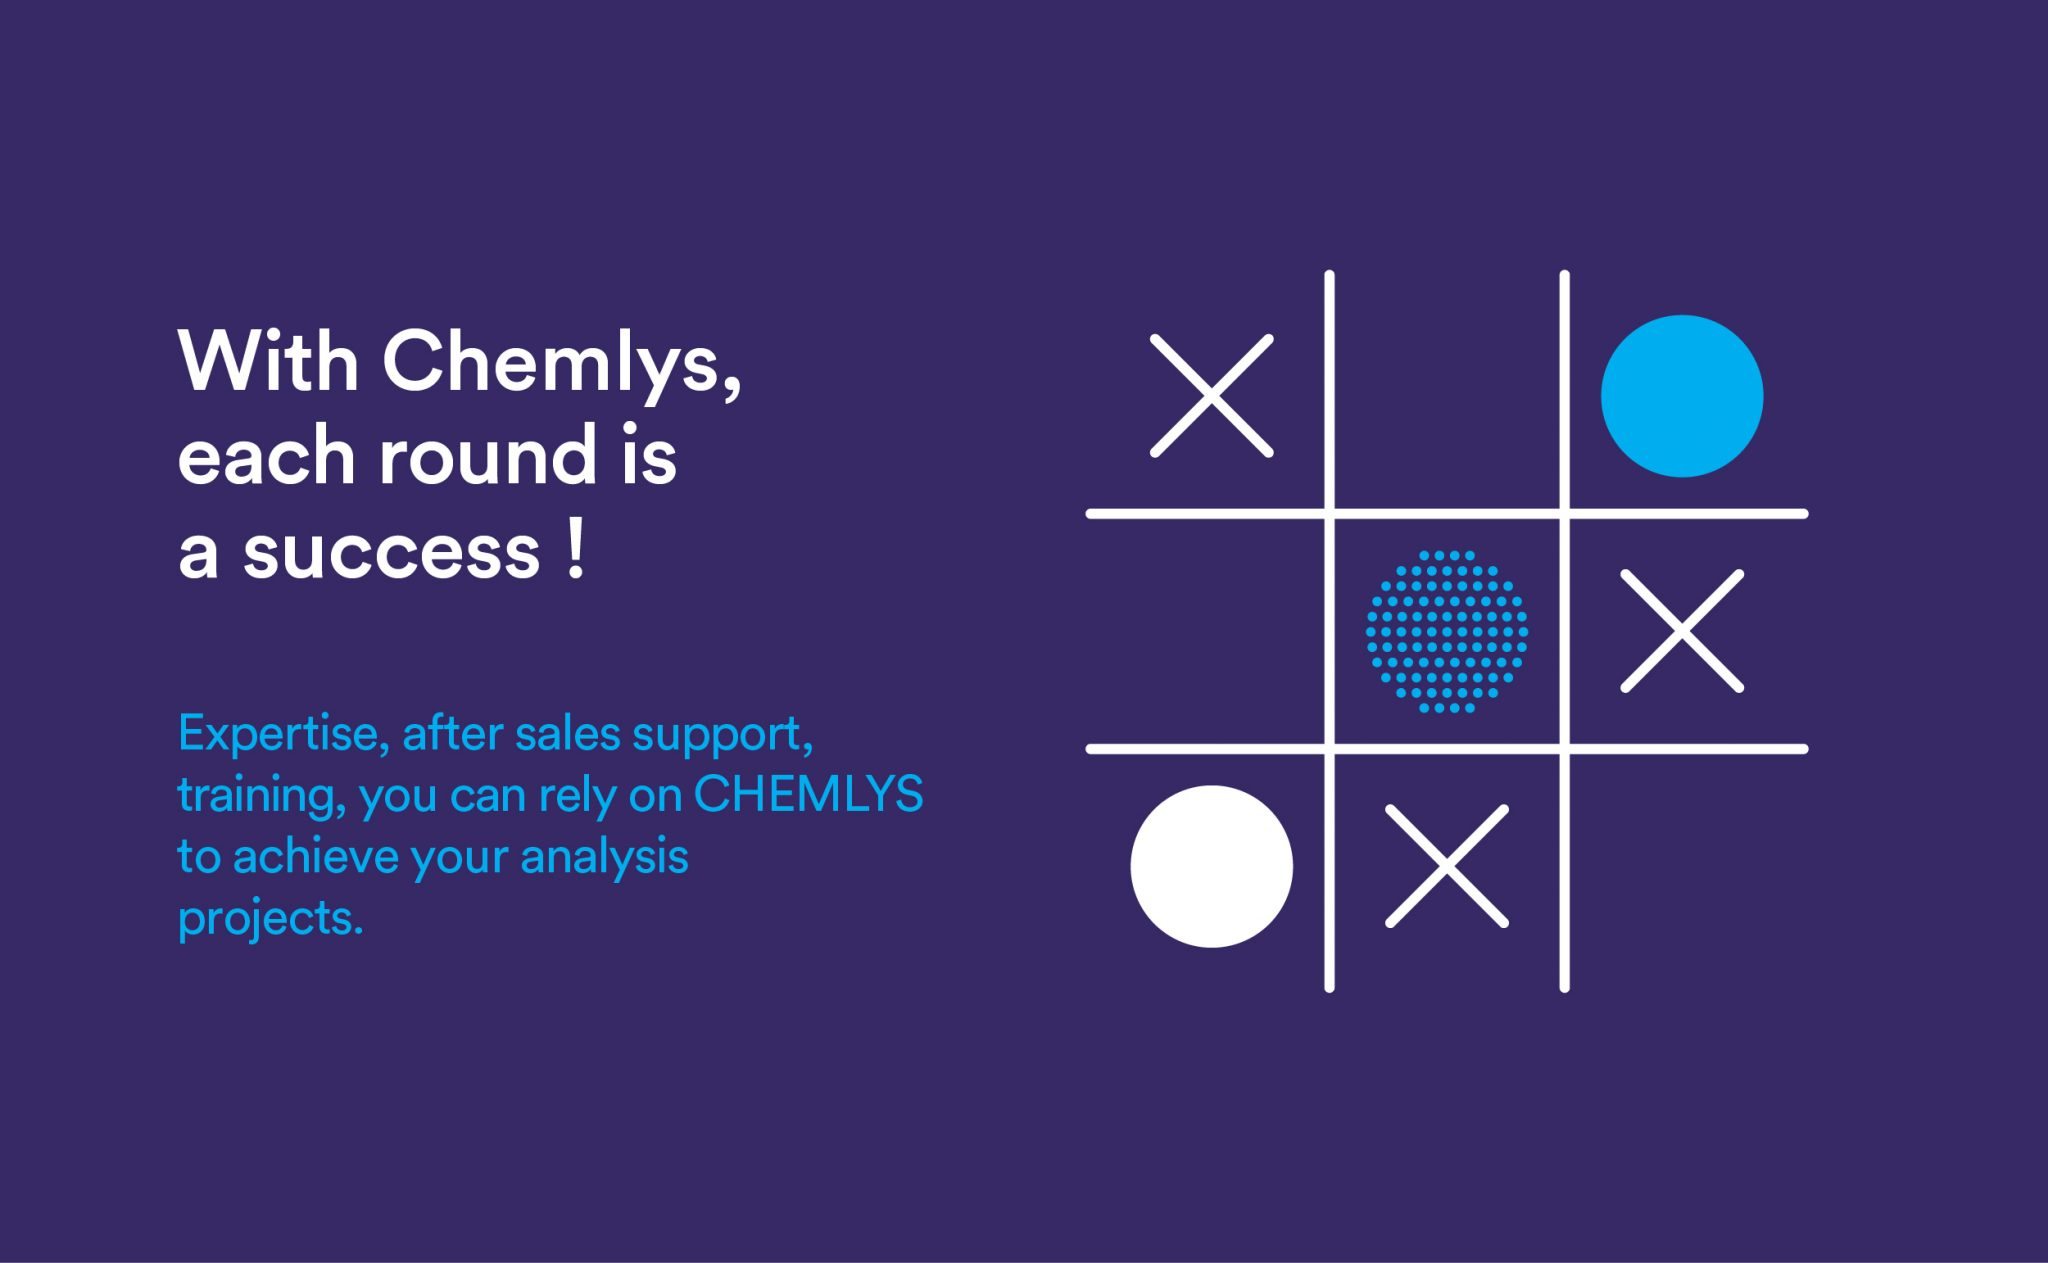 chemlys services